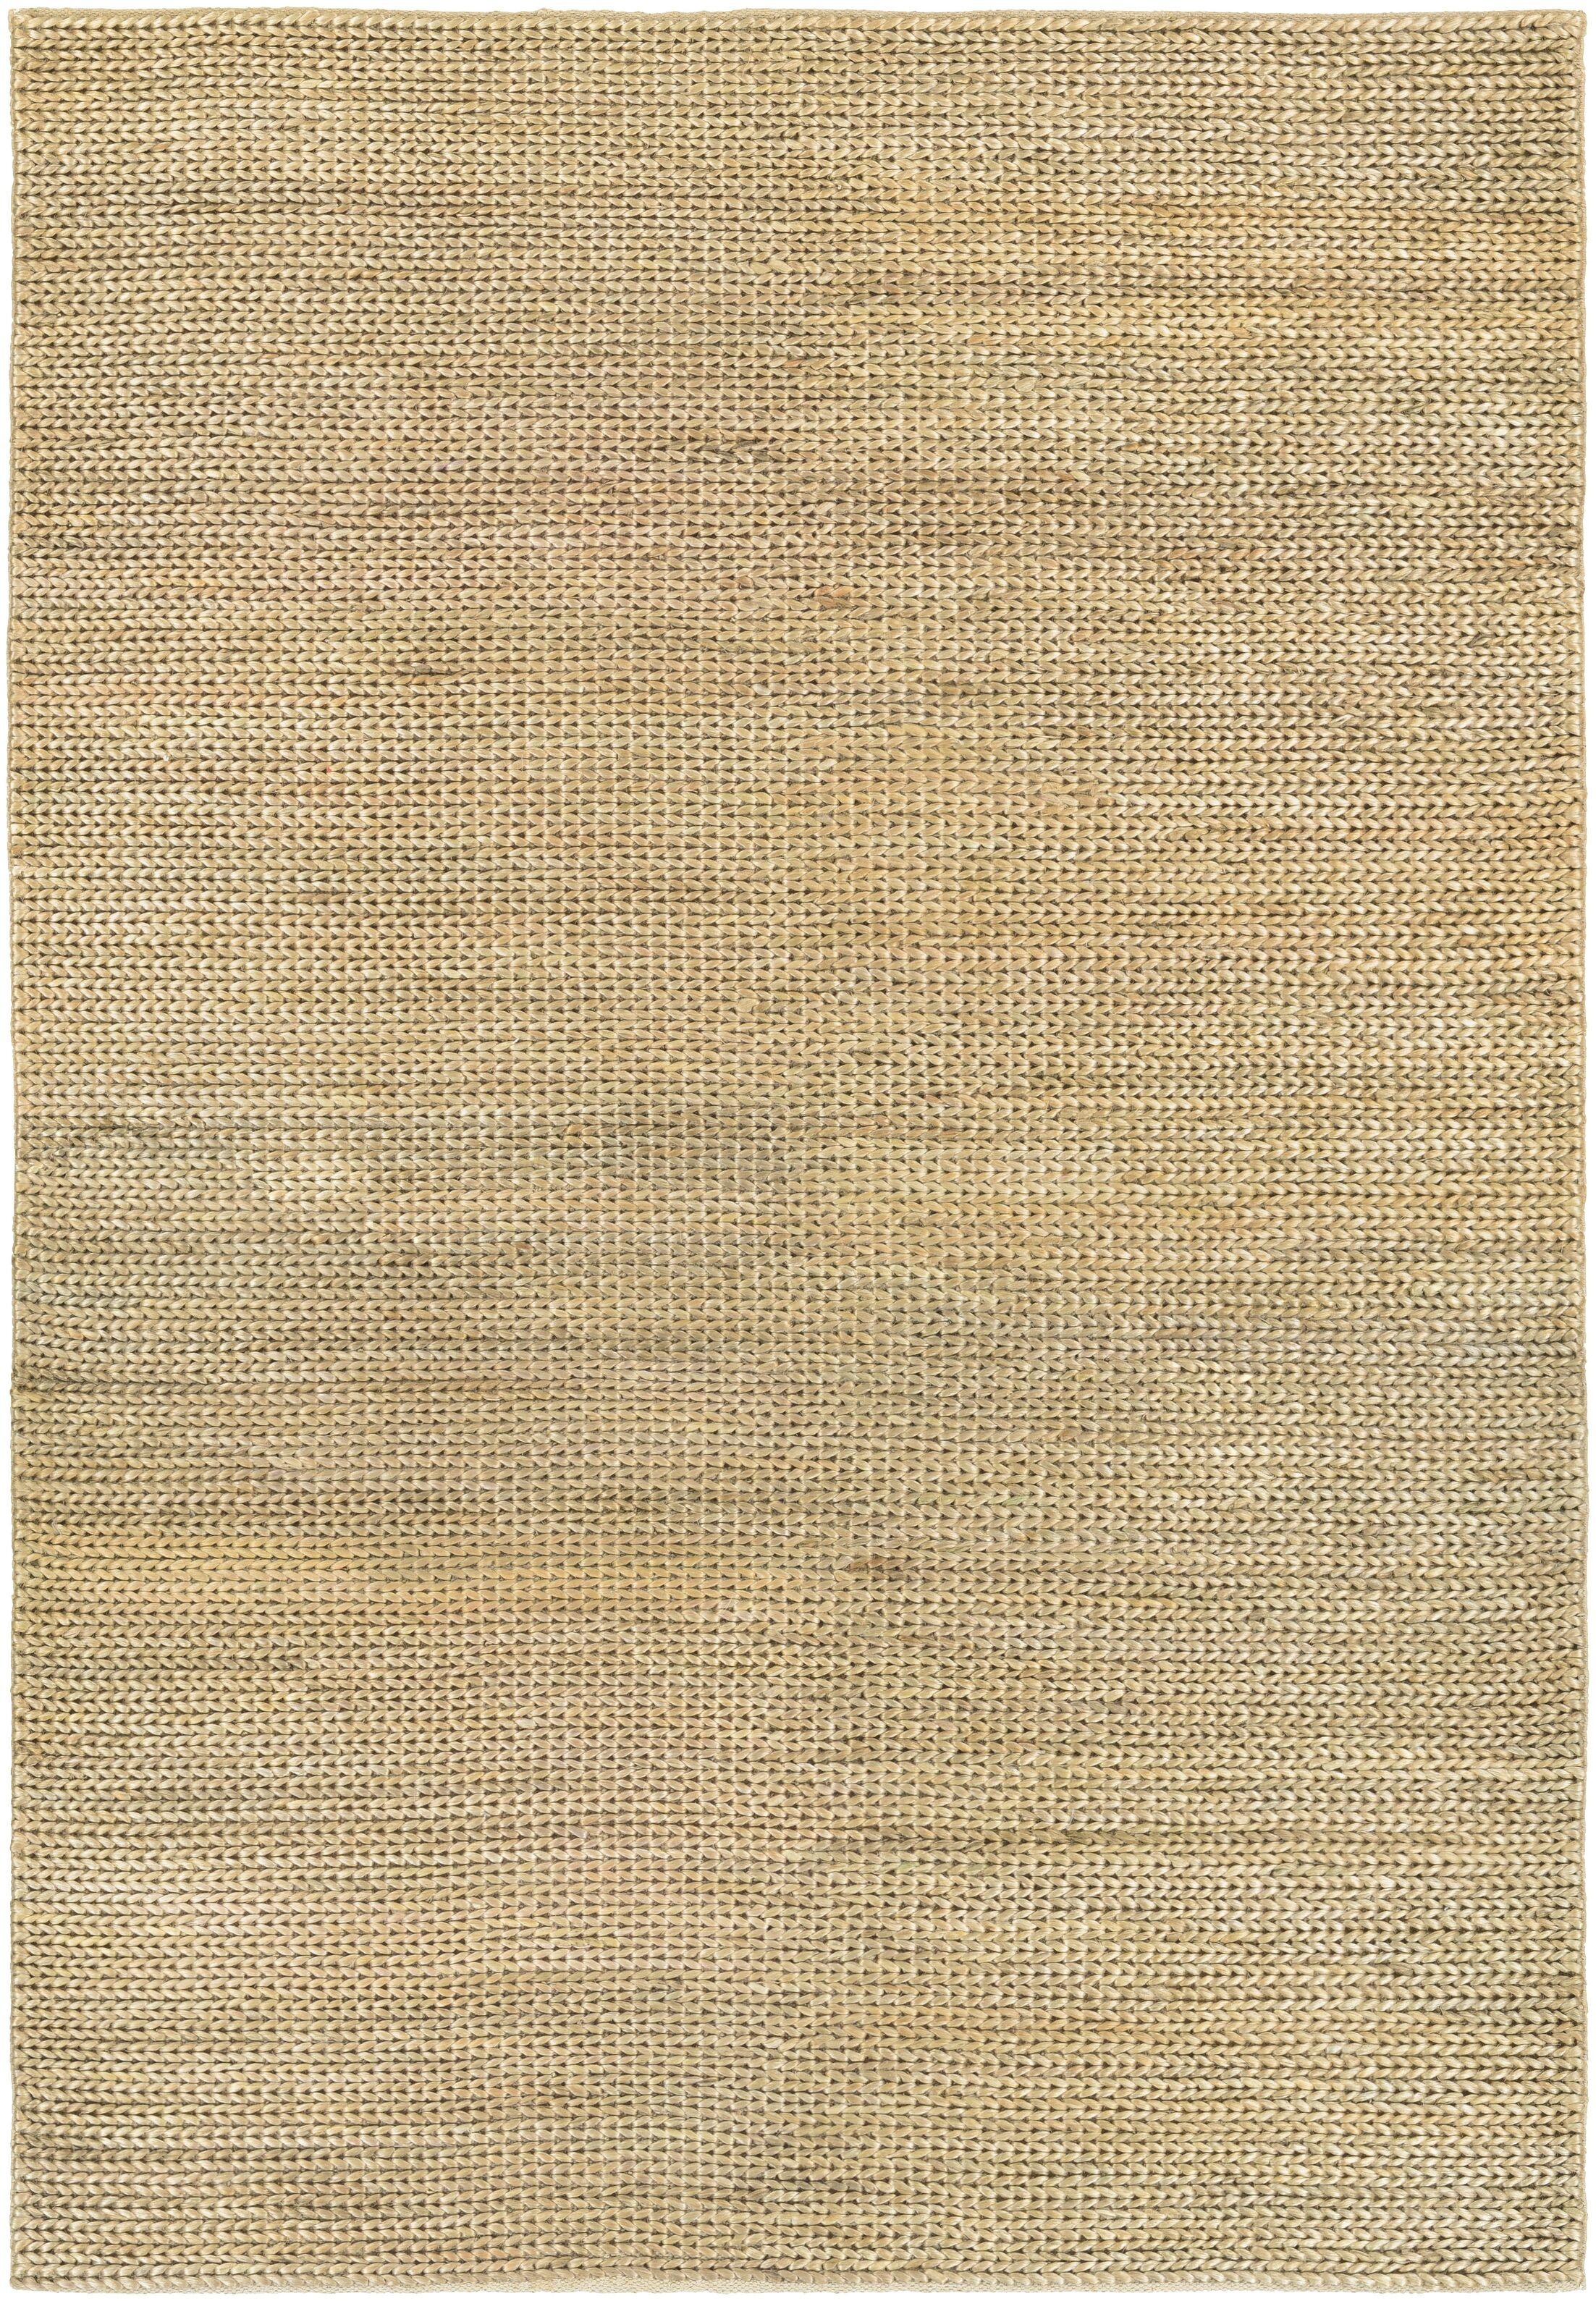 Uhlig Hand Woven Cotton Cream/Natural Area Rug Rug Size: Rectangle 3'5